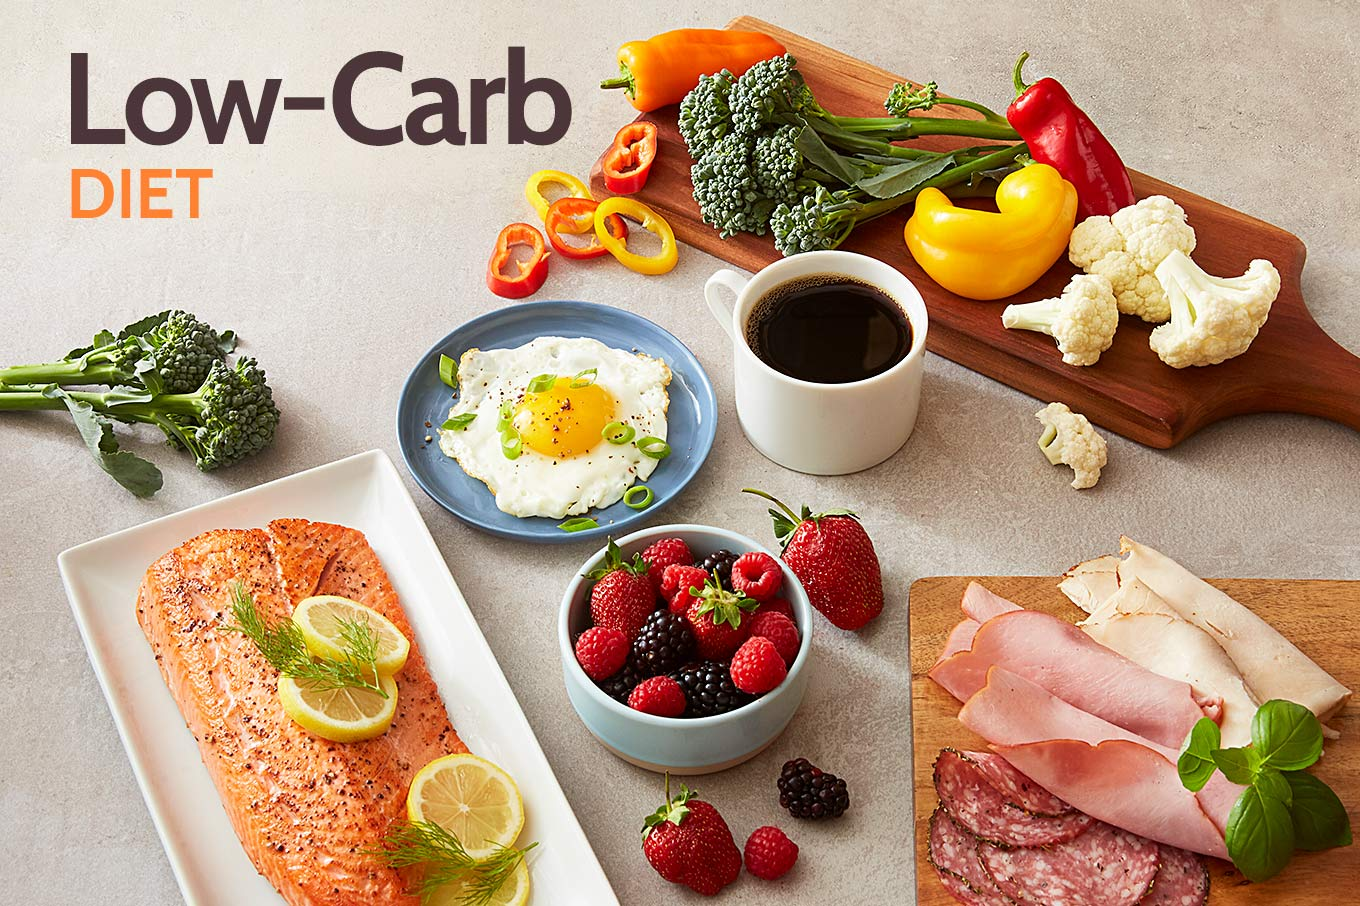 Starting Low-Carb Diet: 5 Steps For Success